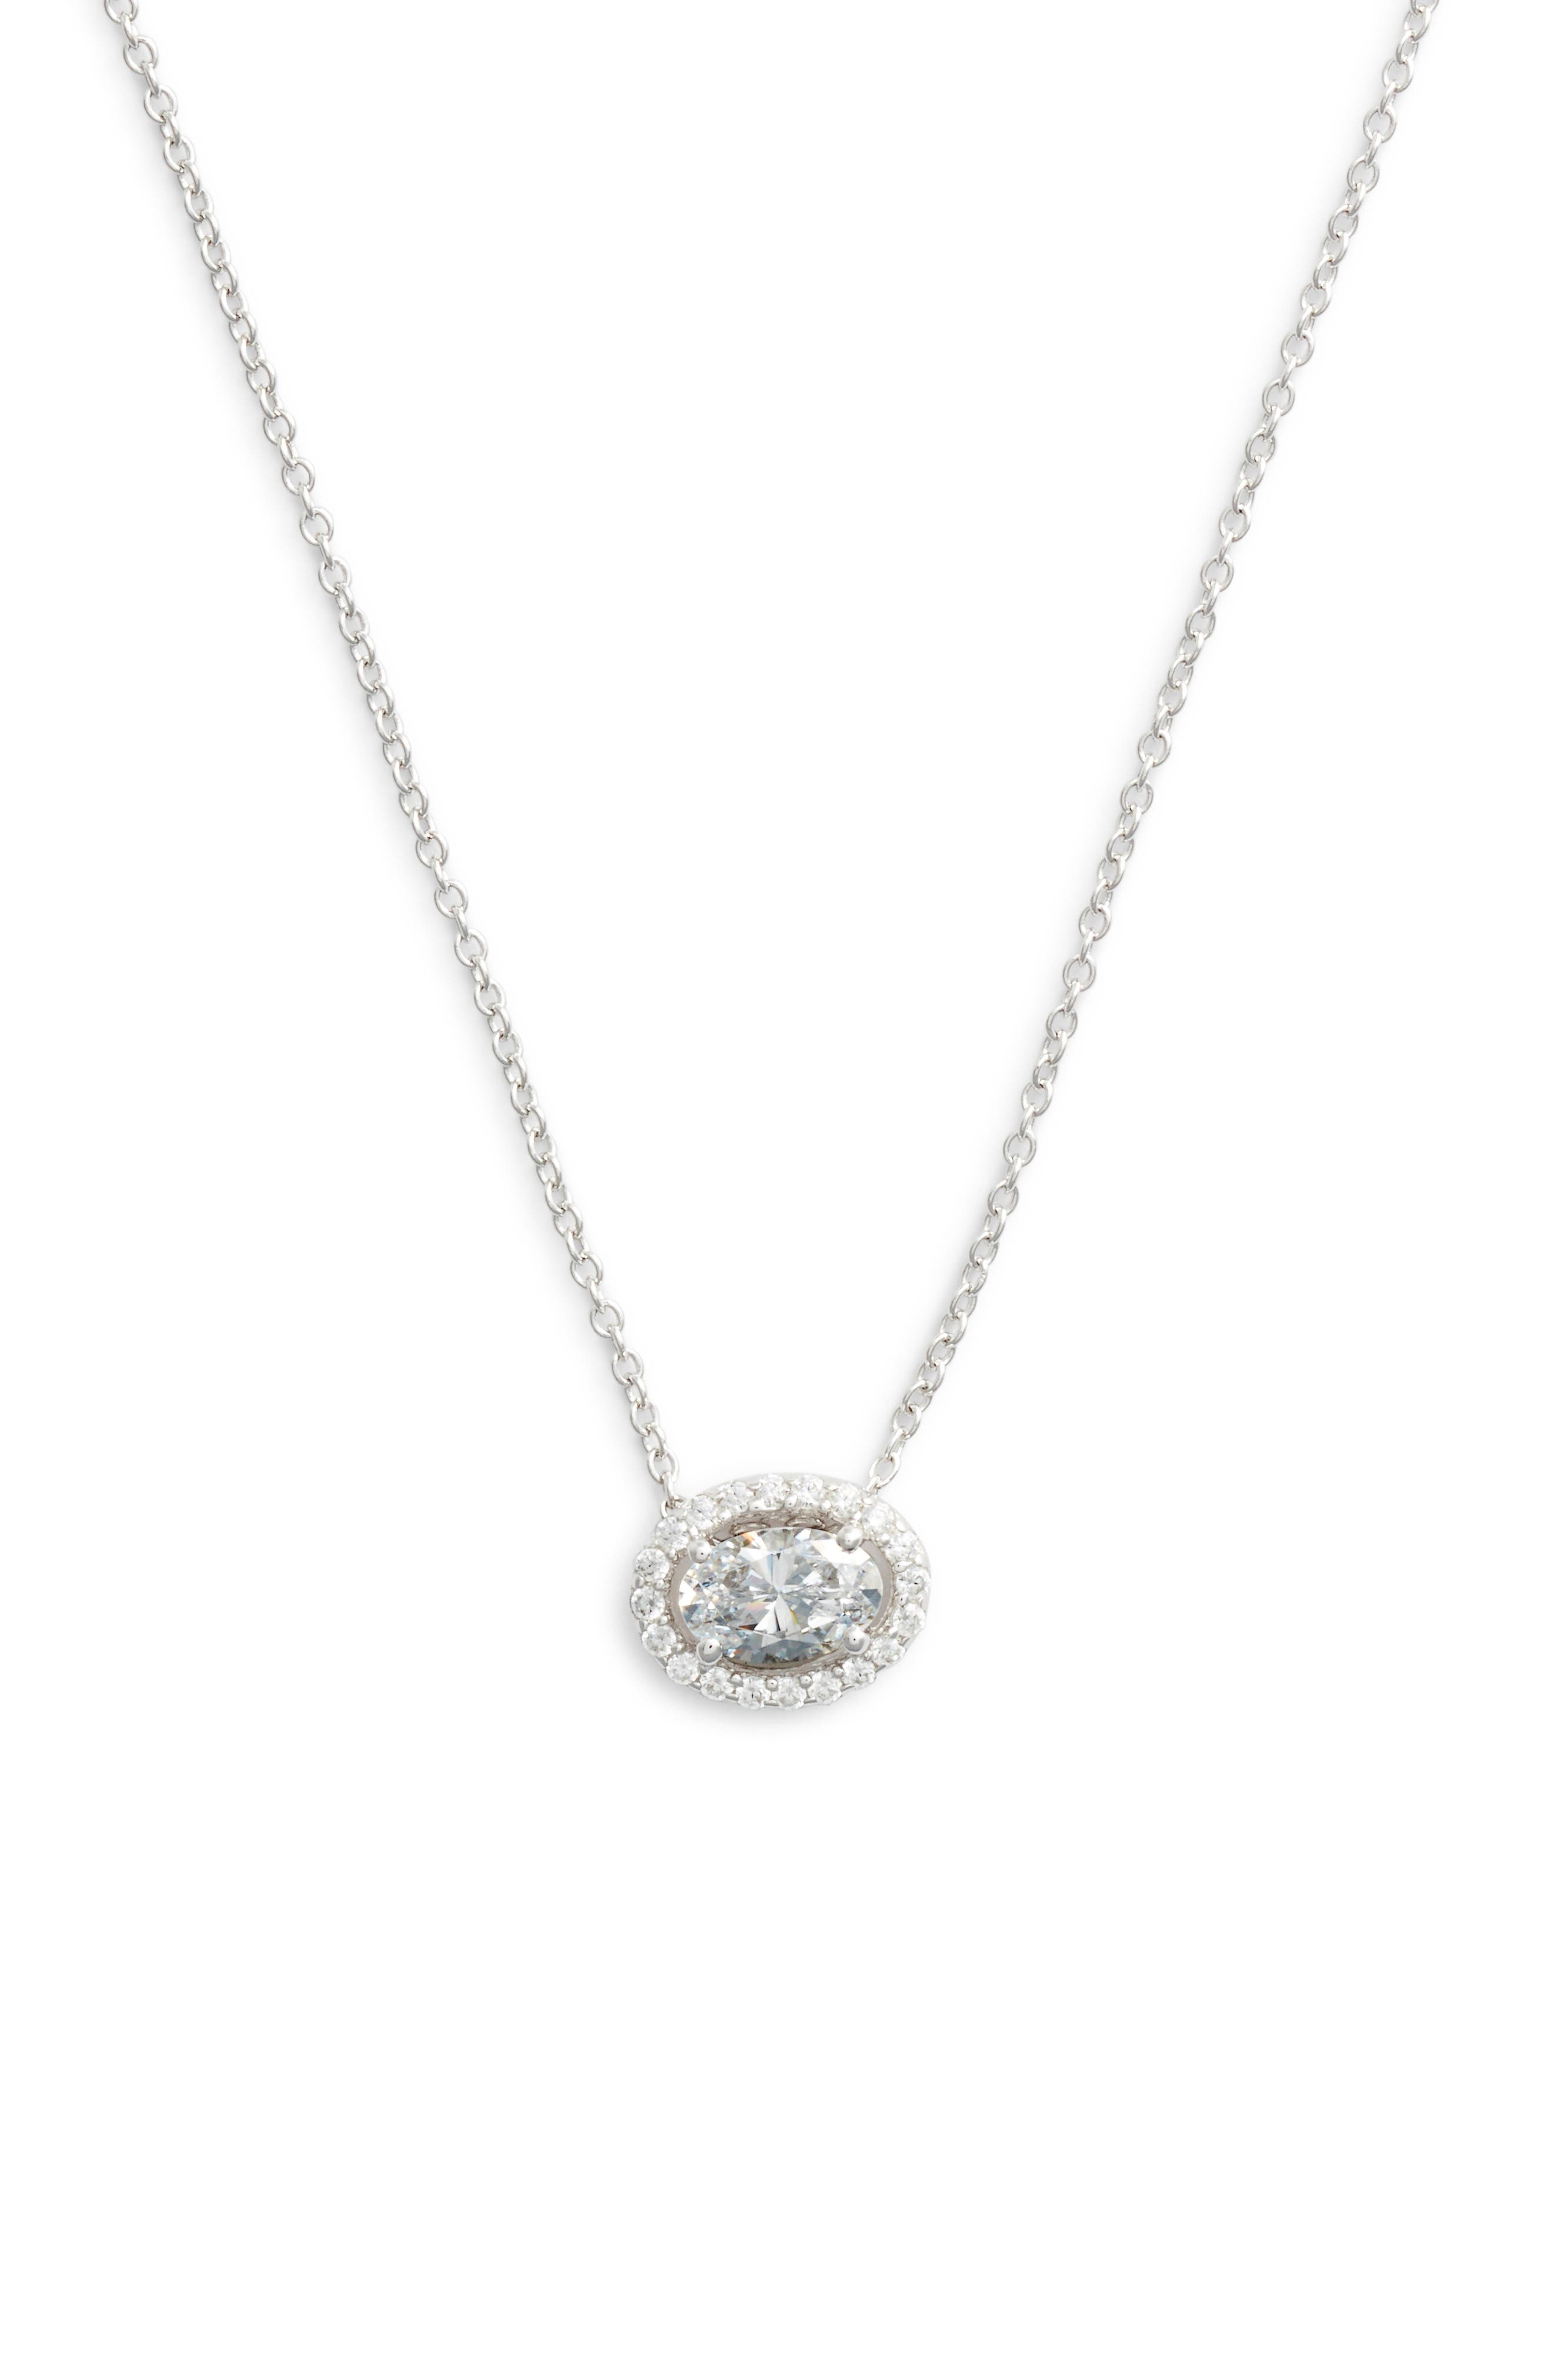 Oval Halo Necklace,                             Main thumbnail 1, color,                             SILVER/ CLEAR